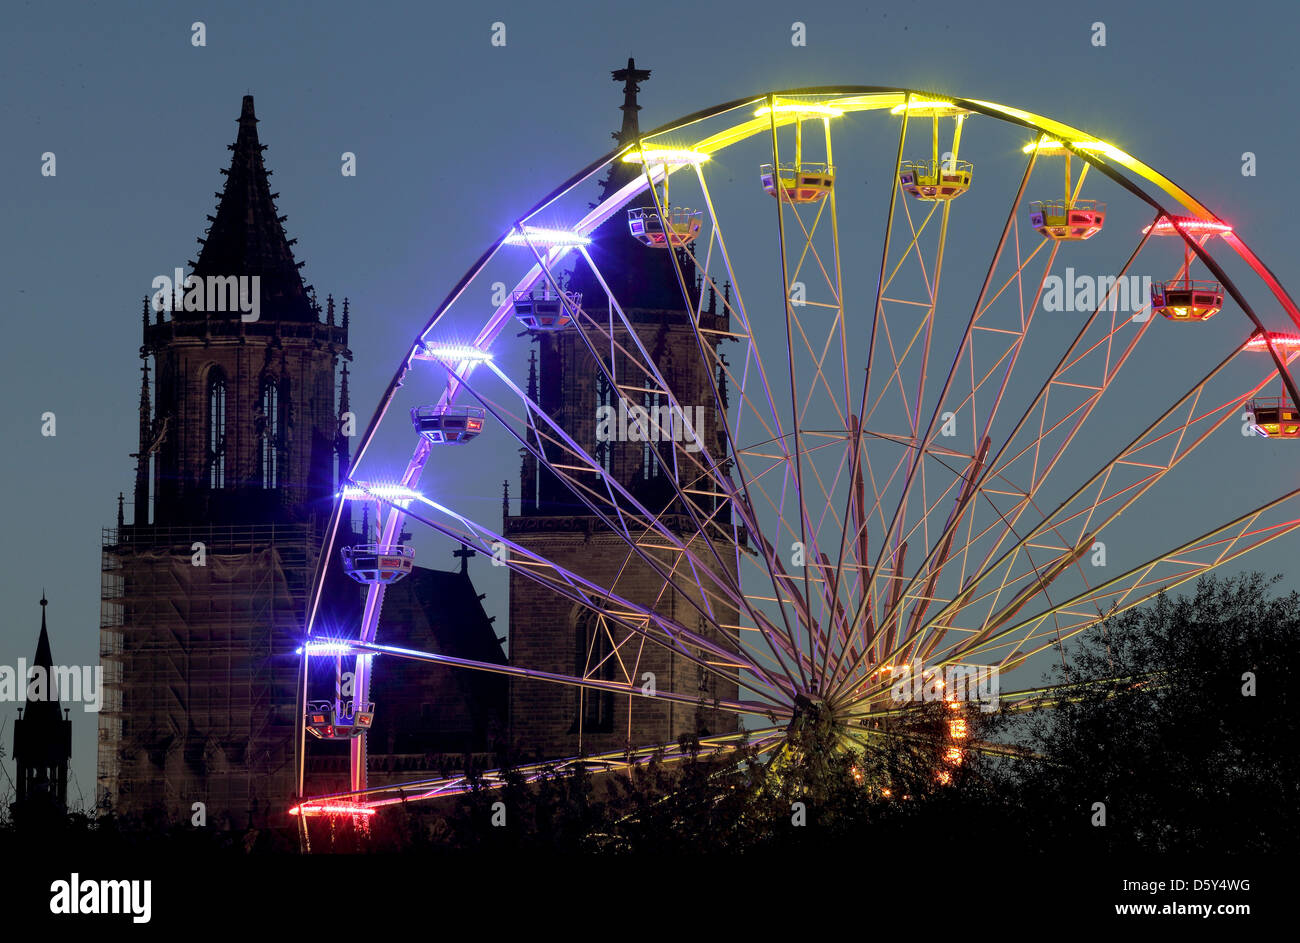 A ferris wheel, that is illuminated with colorfull lights, is visible in front of the Cathedral 'Saint Katharina Stock Photo